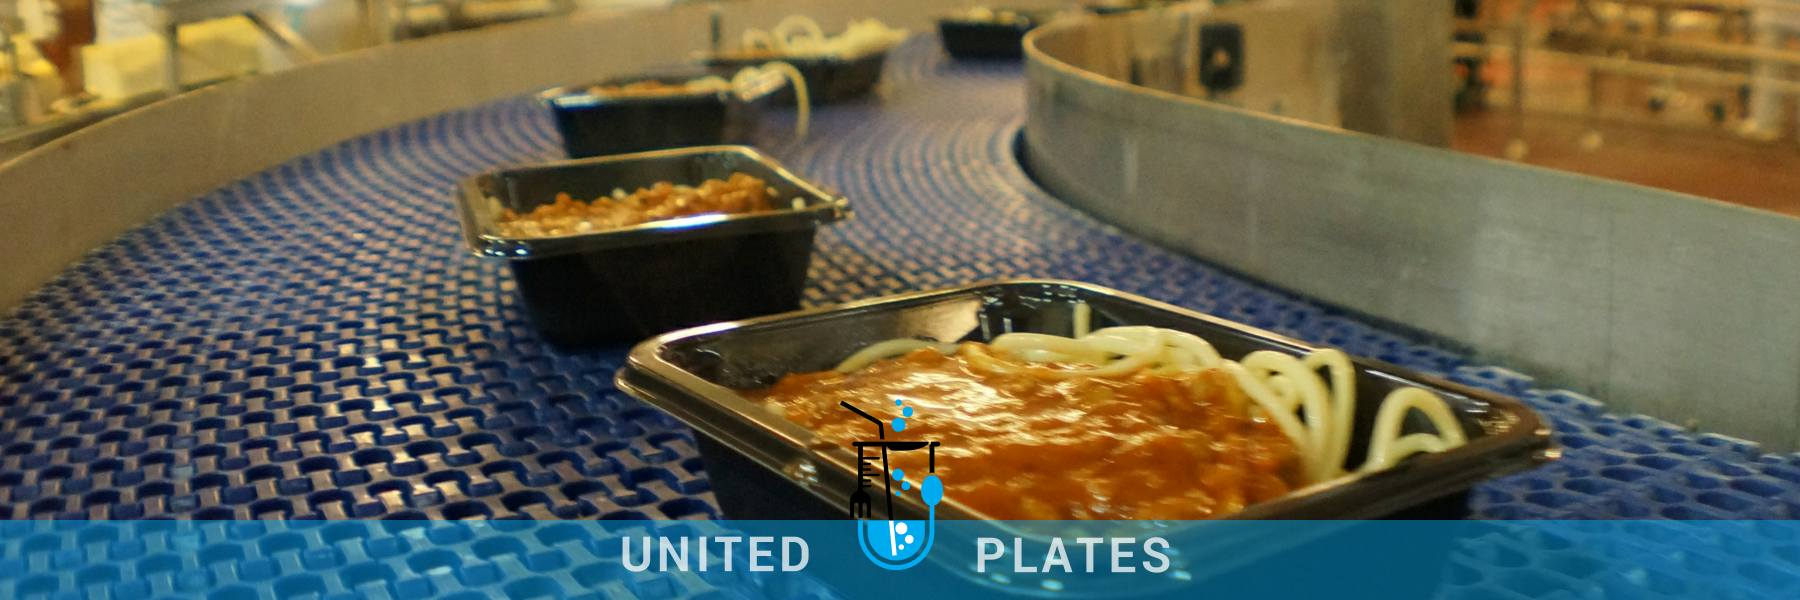 United Plates Research & Development in Food - Front Line Support